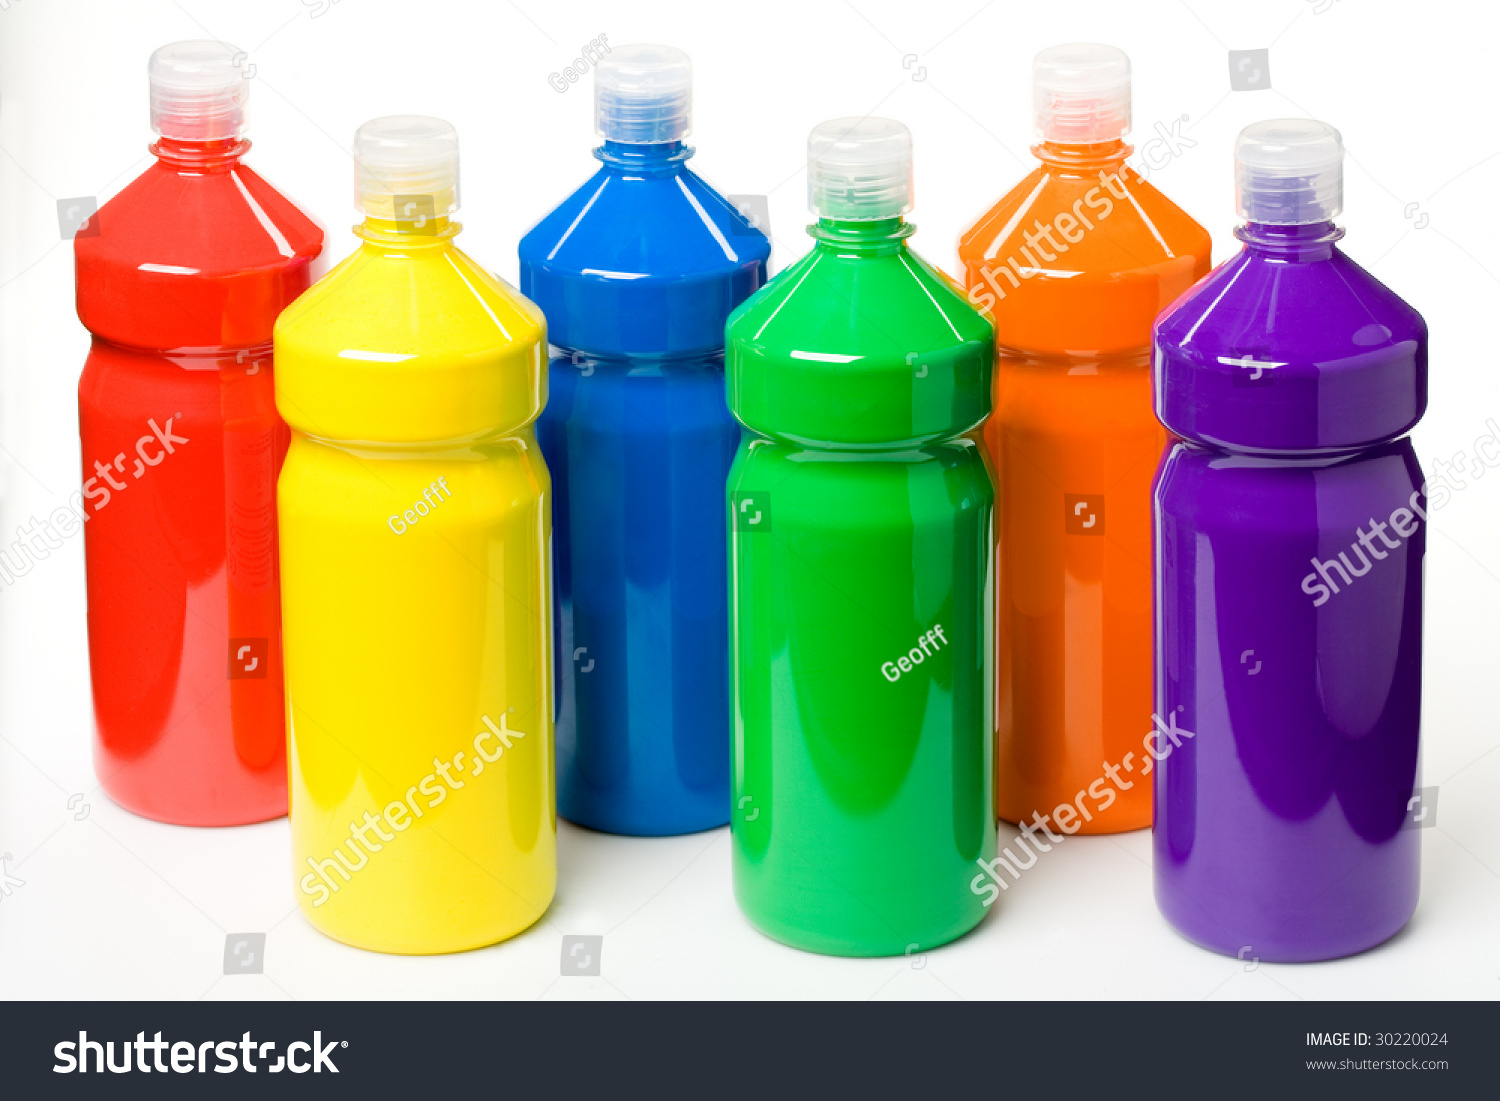 Bottles of paint stock photo 30220024 shutterstock for Can acrylic paint be used on glass bottles